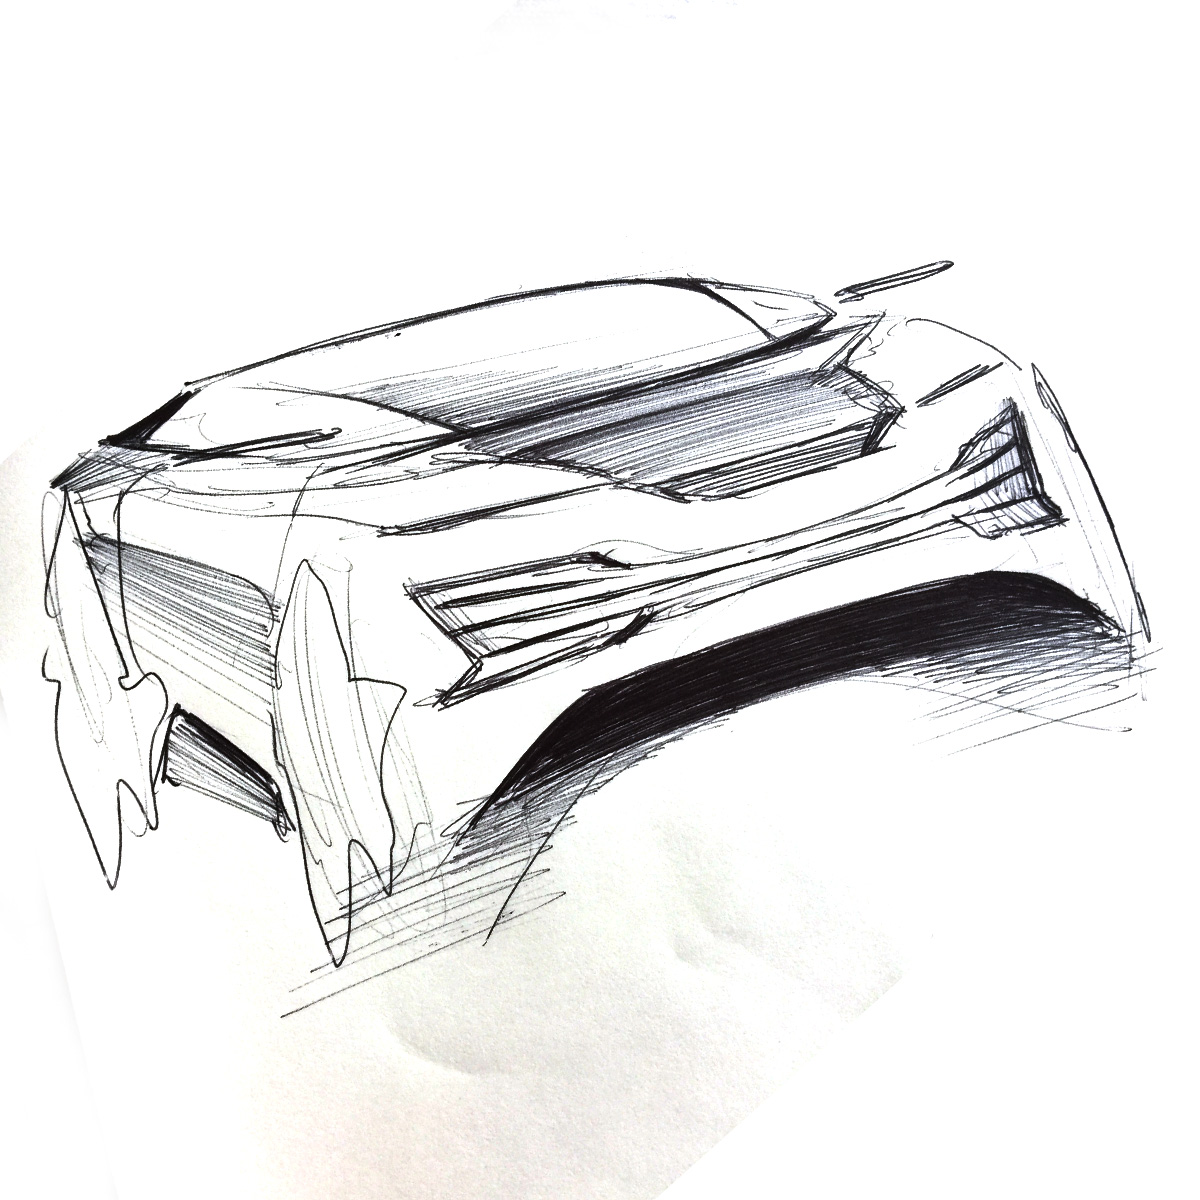 bothodesign-felix-haas-vehicle-automotive-concept-IG_sketches_009